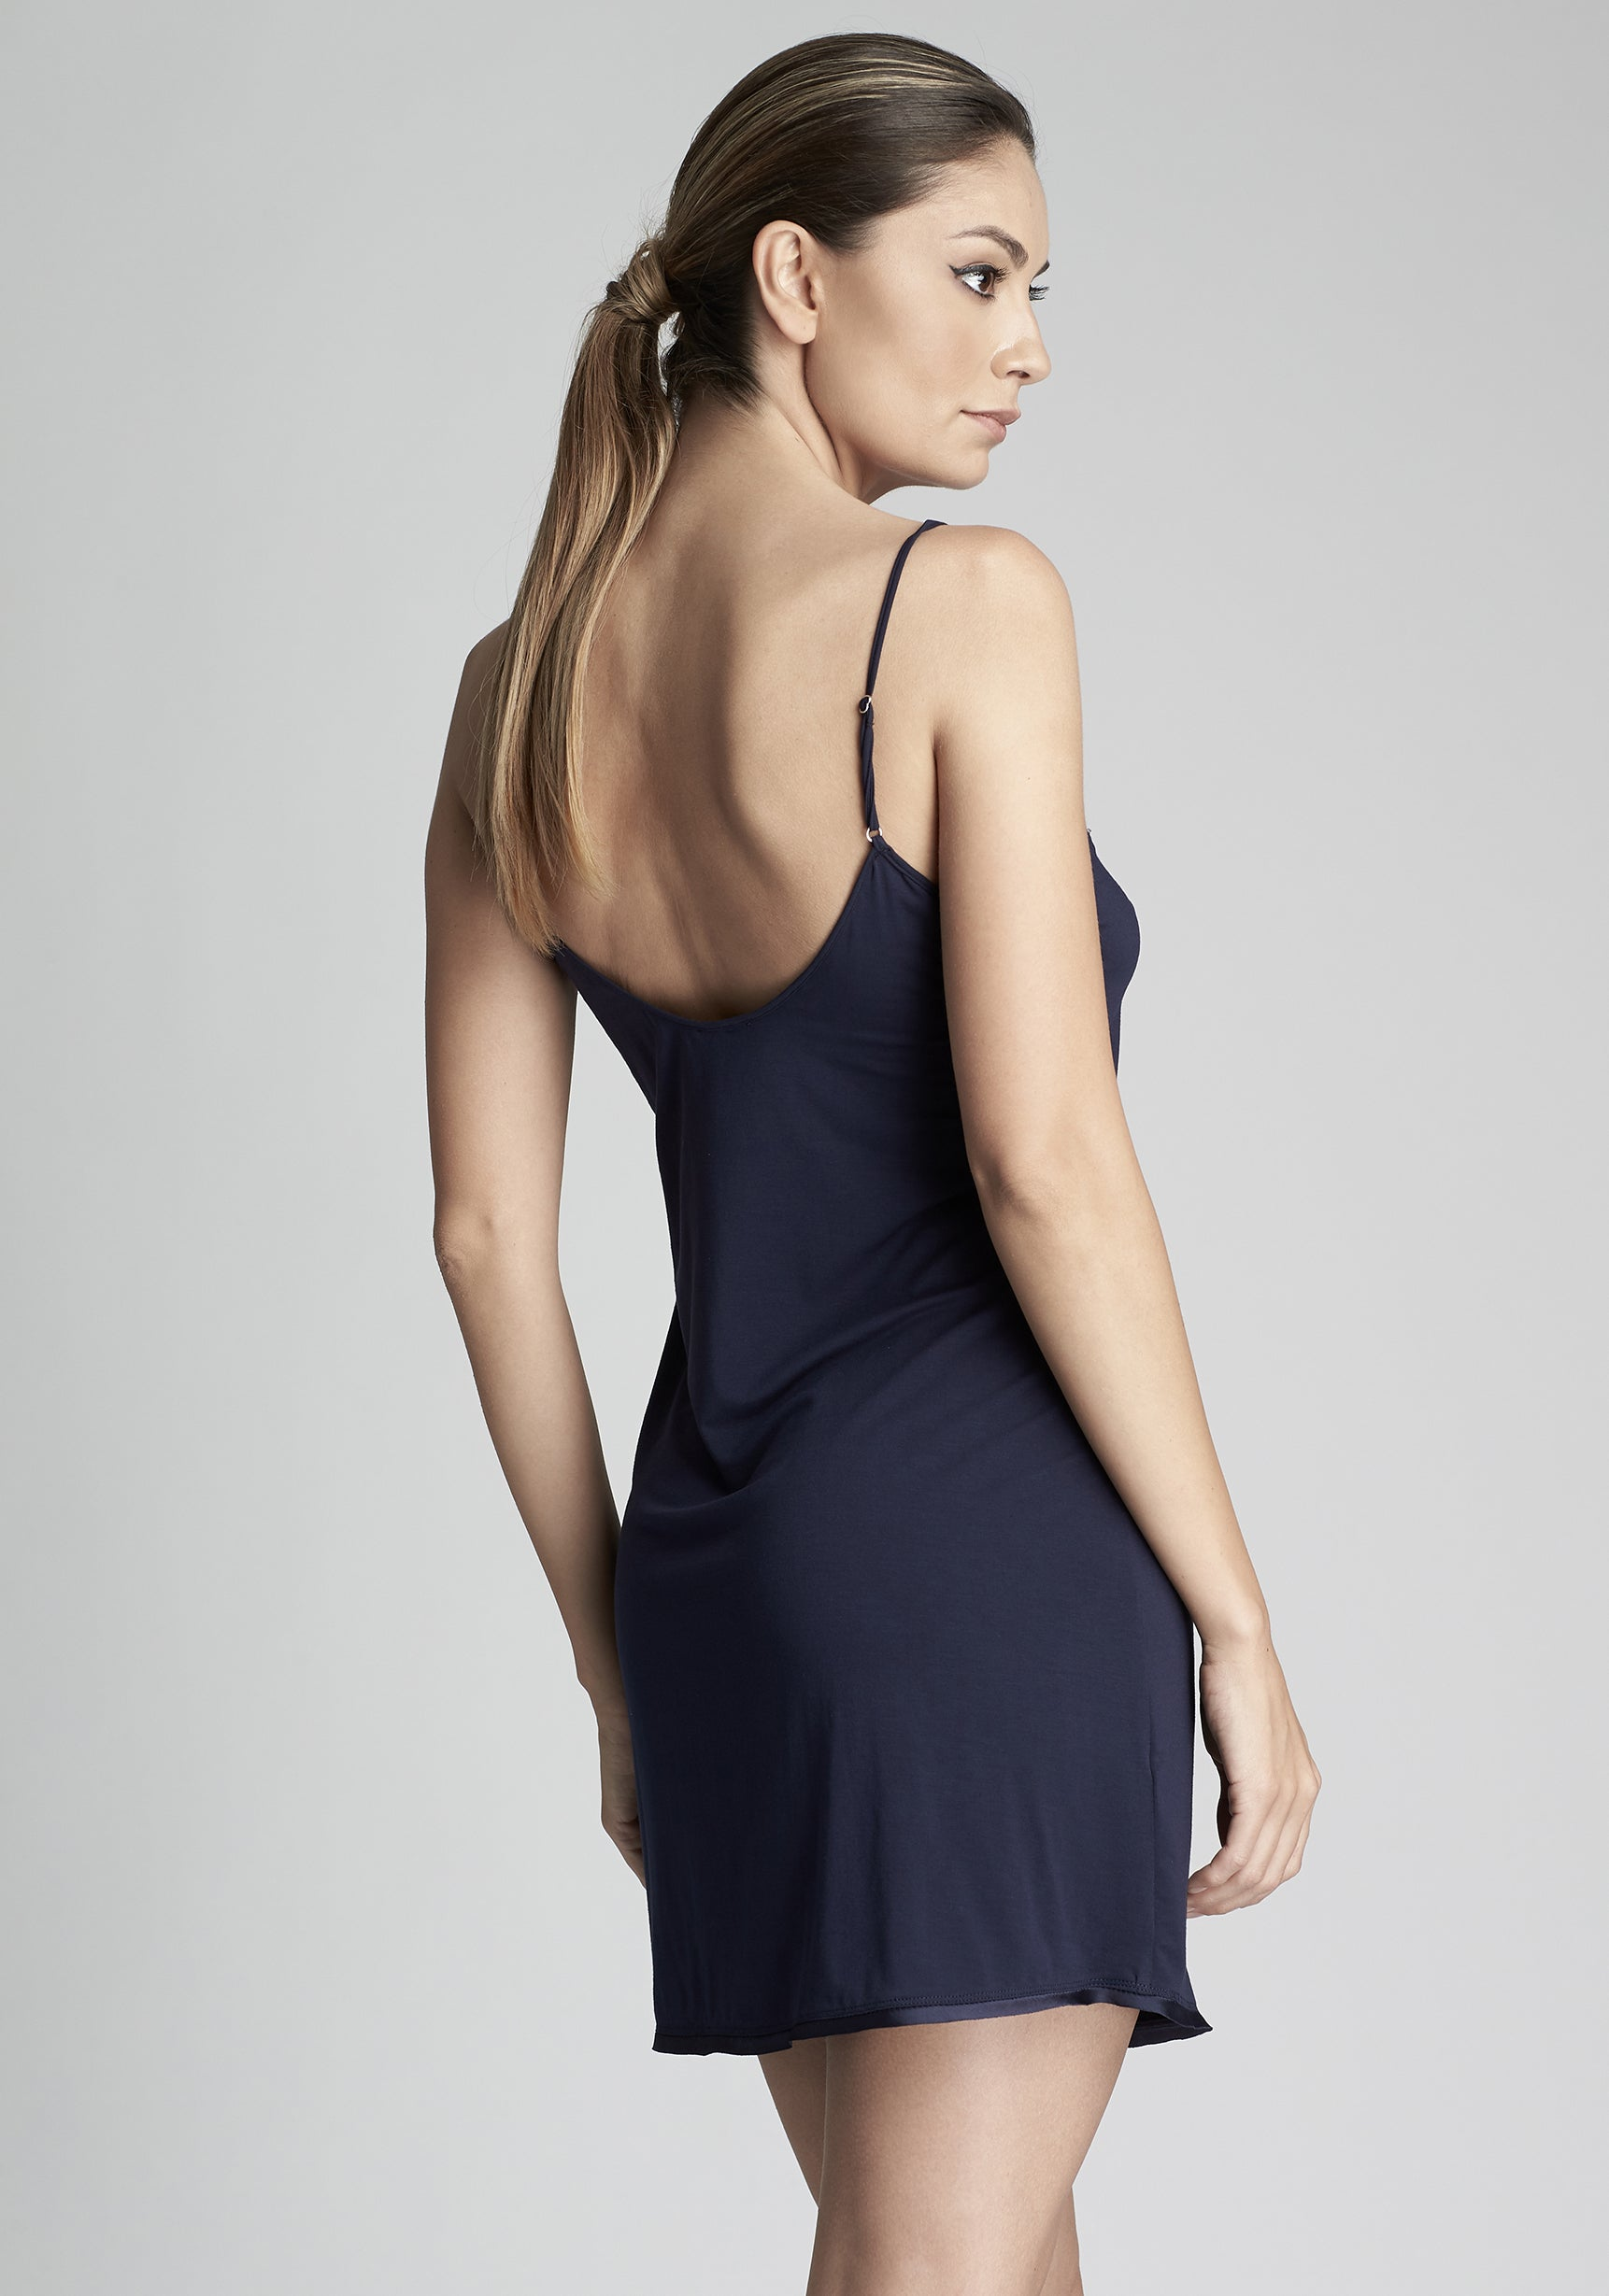 Isolde Midi chemise  with lace inserts  in Navy Blue